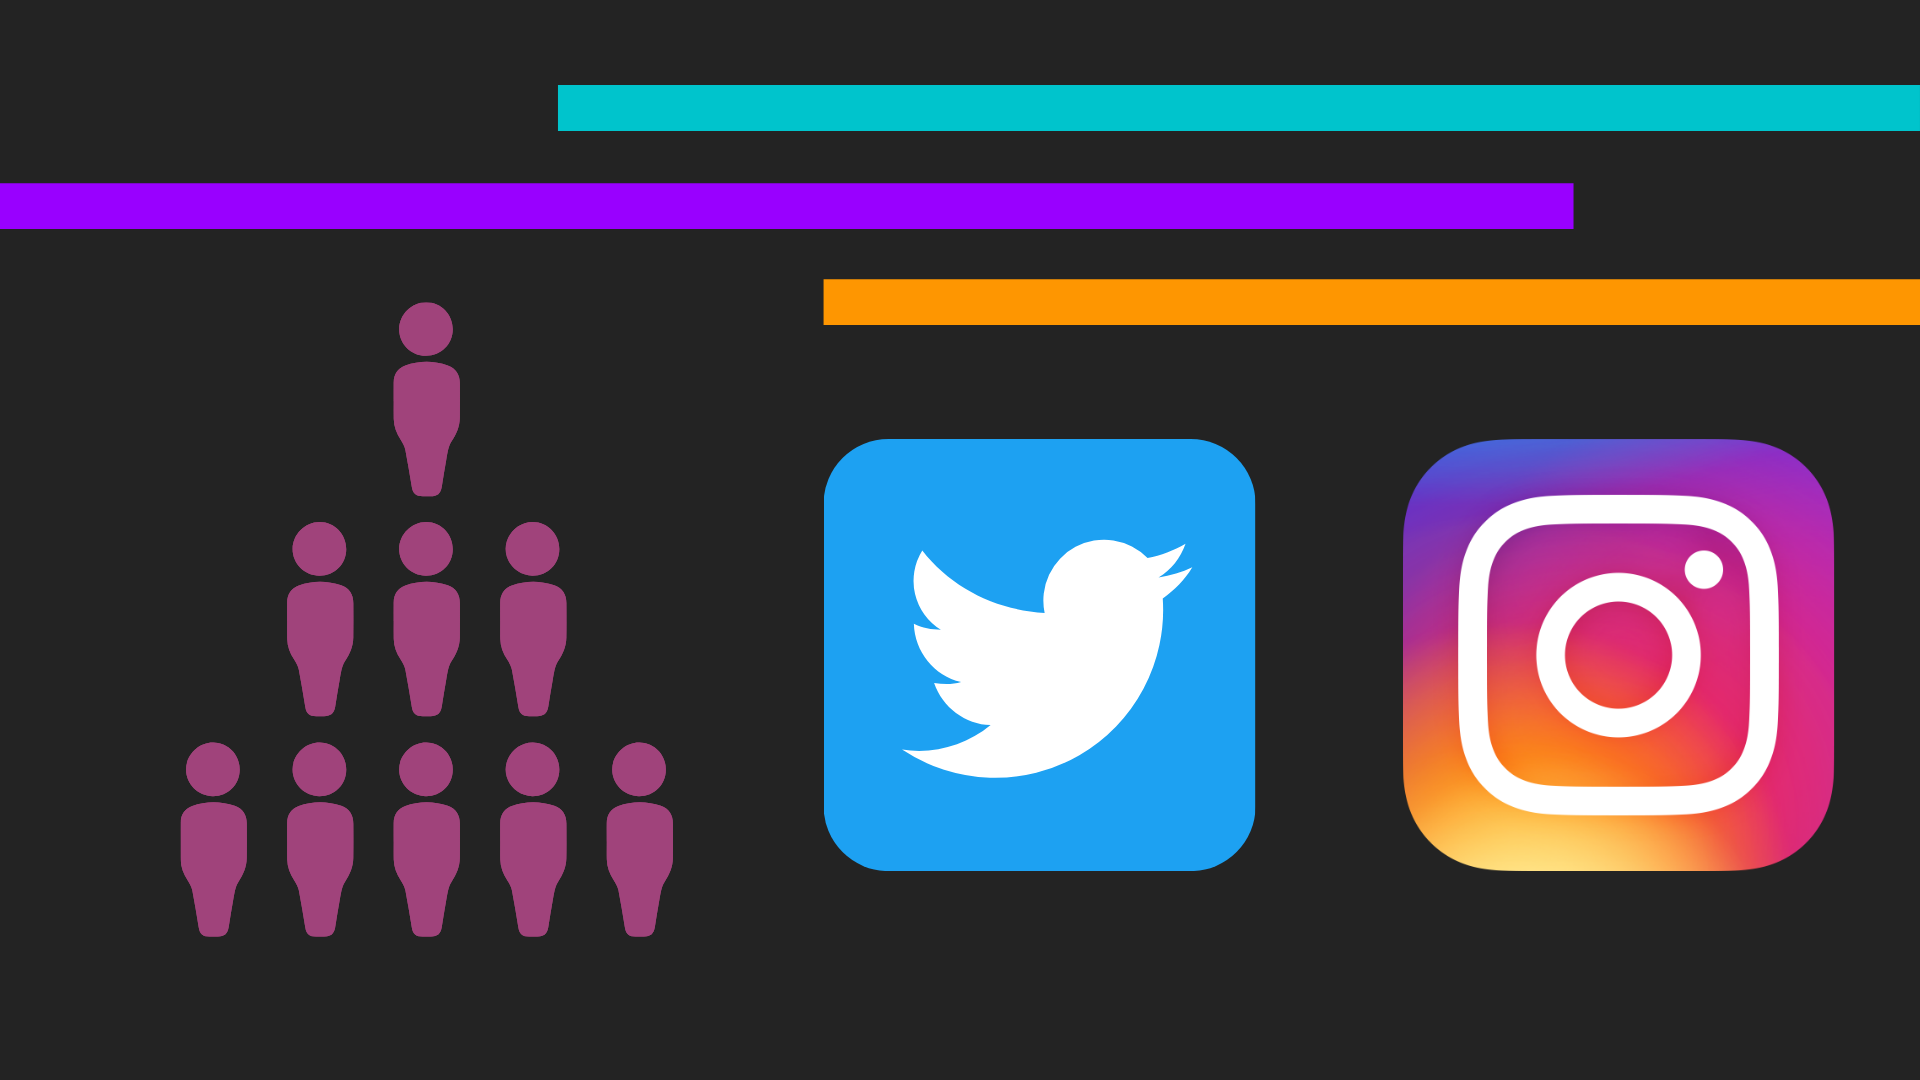 A black, purple, and turquoise background with the Twitter and Instagram logo.